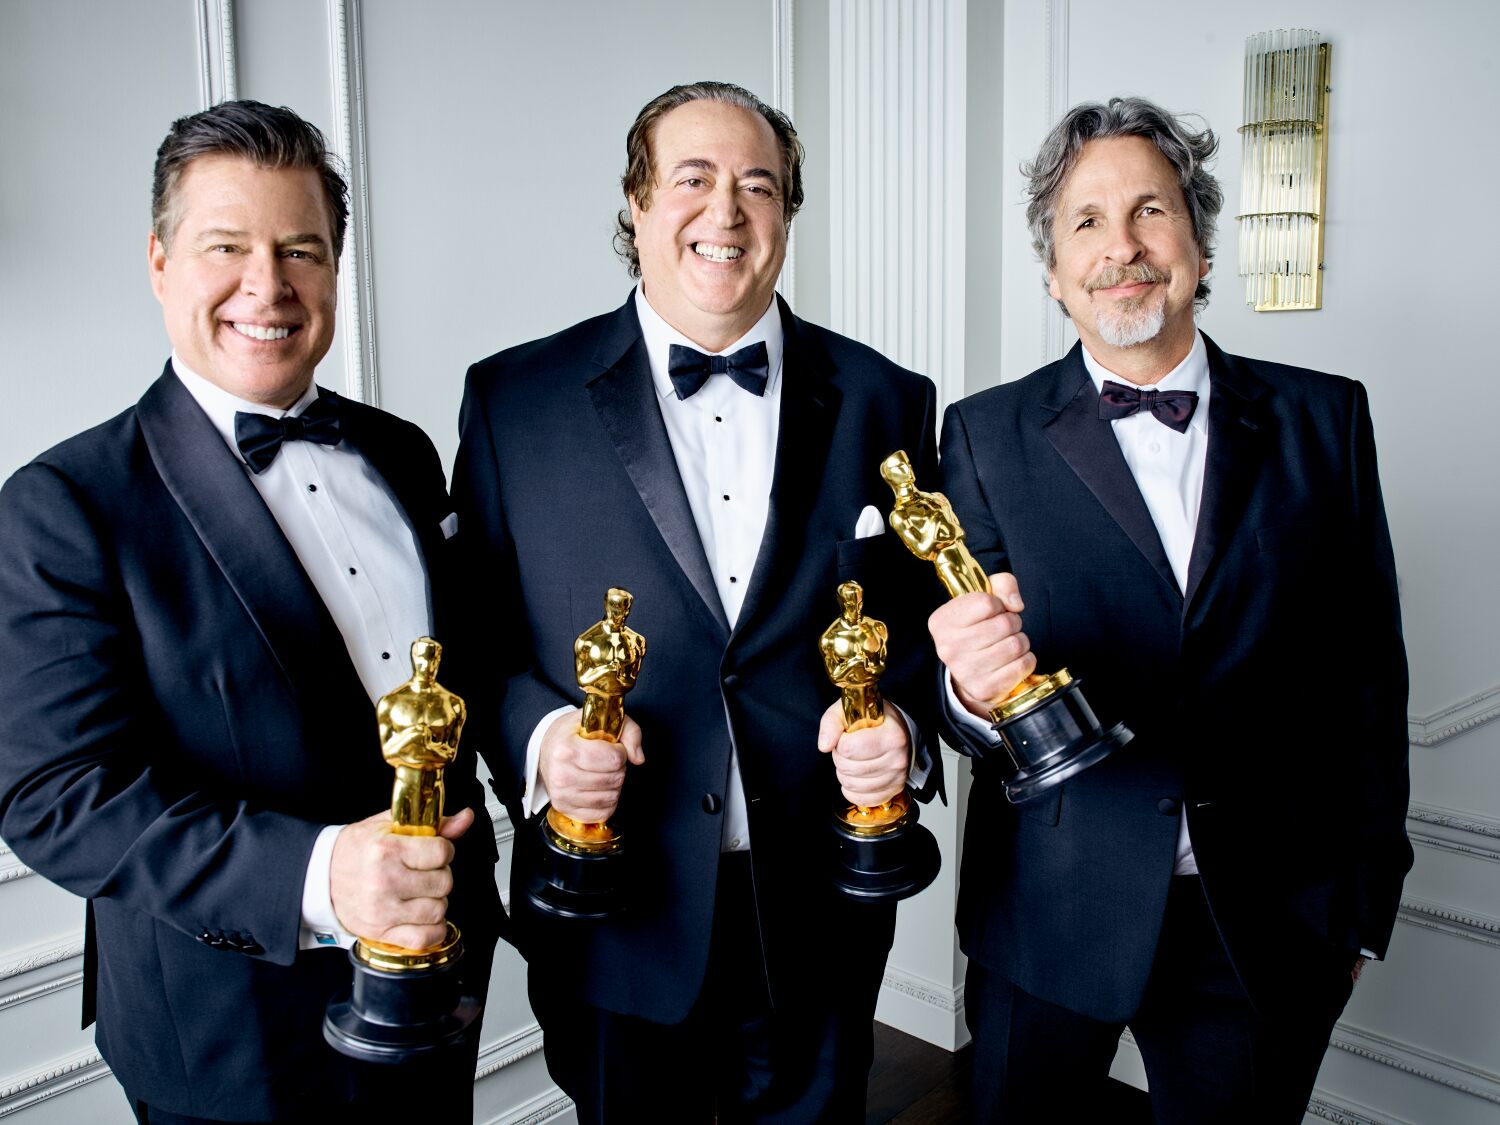 Nick Vallelonga, Brian Currie and Peter Farrelly